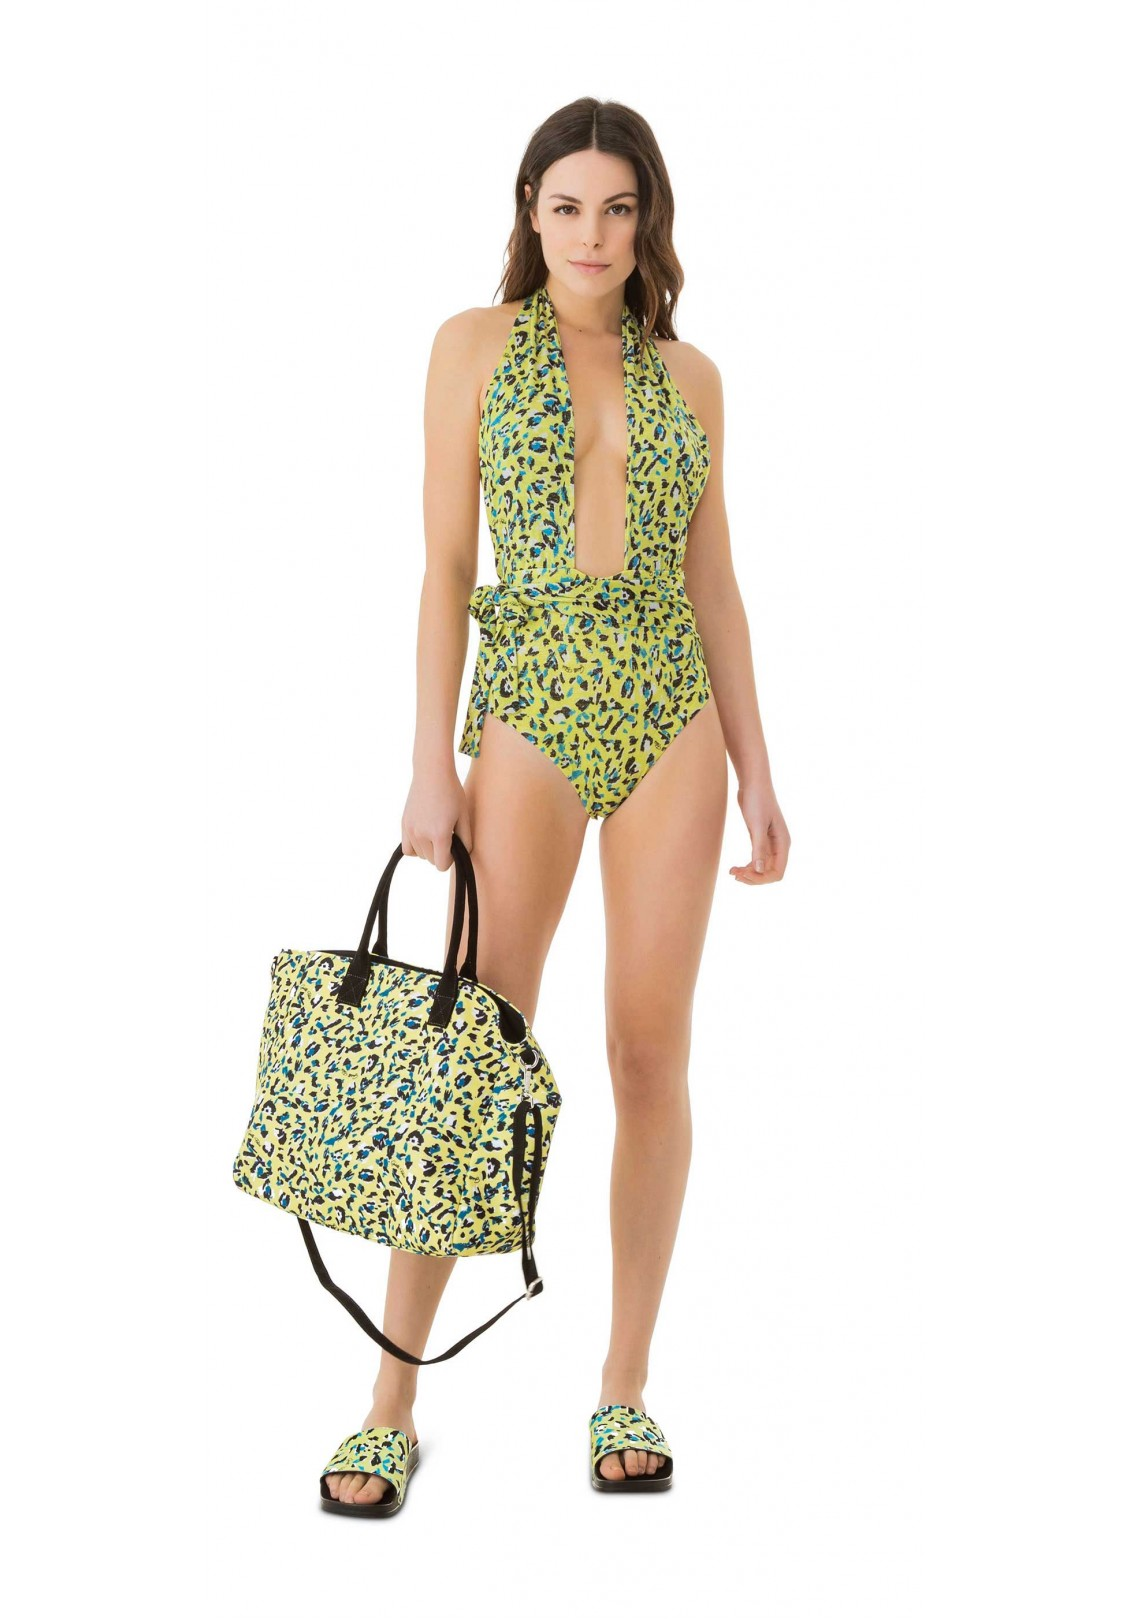 BEACHWEAR - GBDB168 - GAELLE PARIS